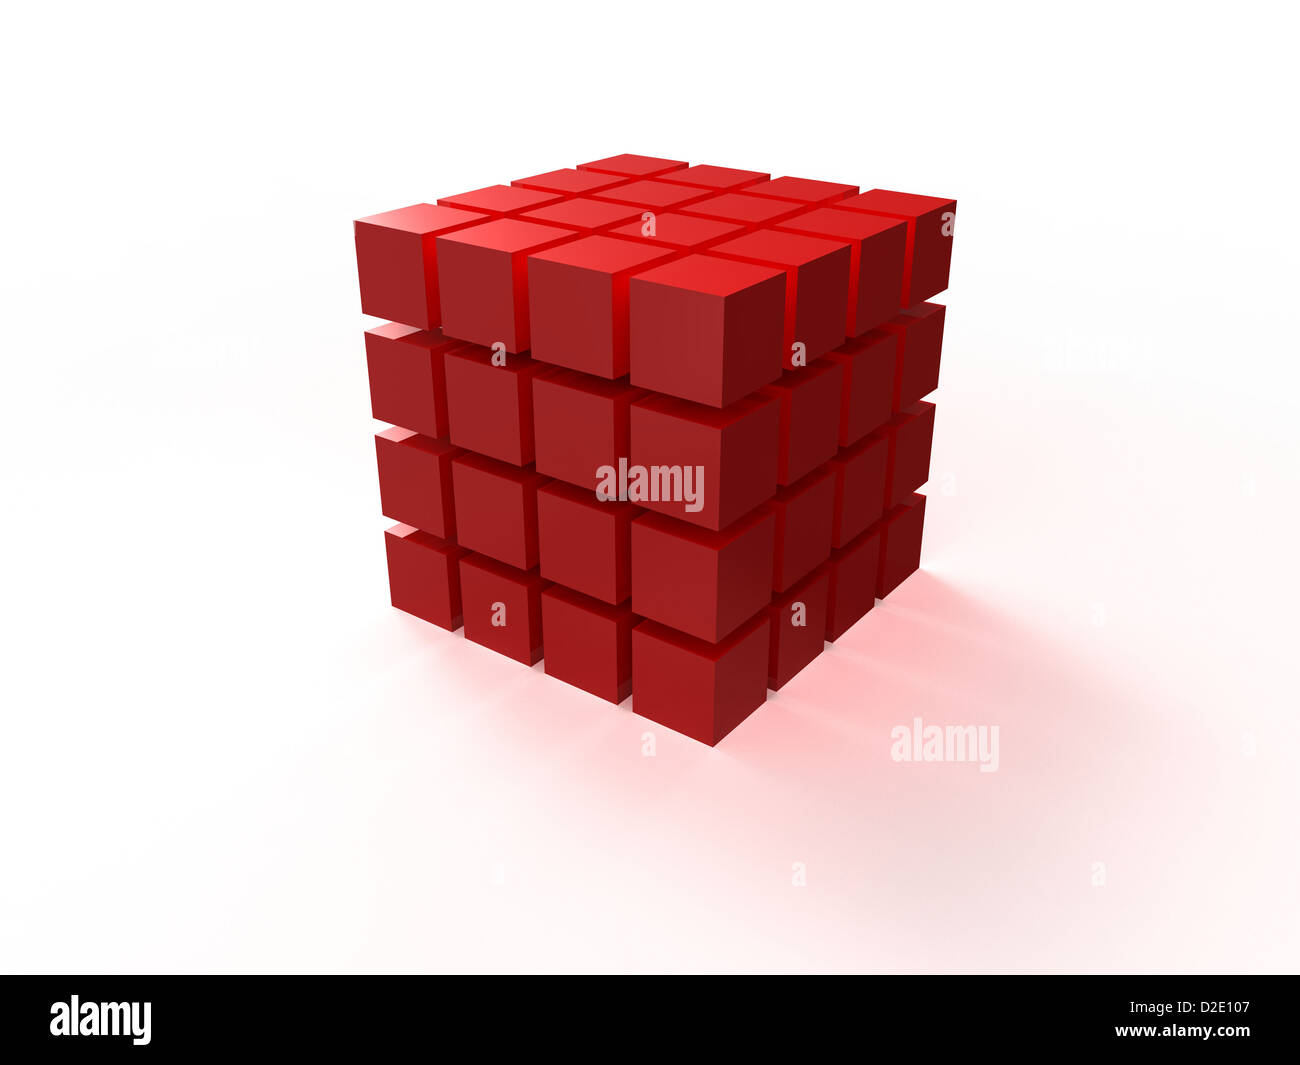 4x4 red ordered cube assembling from blocks isolated on white background - Stock Image